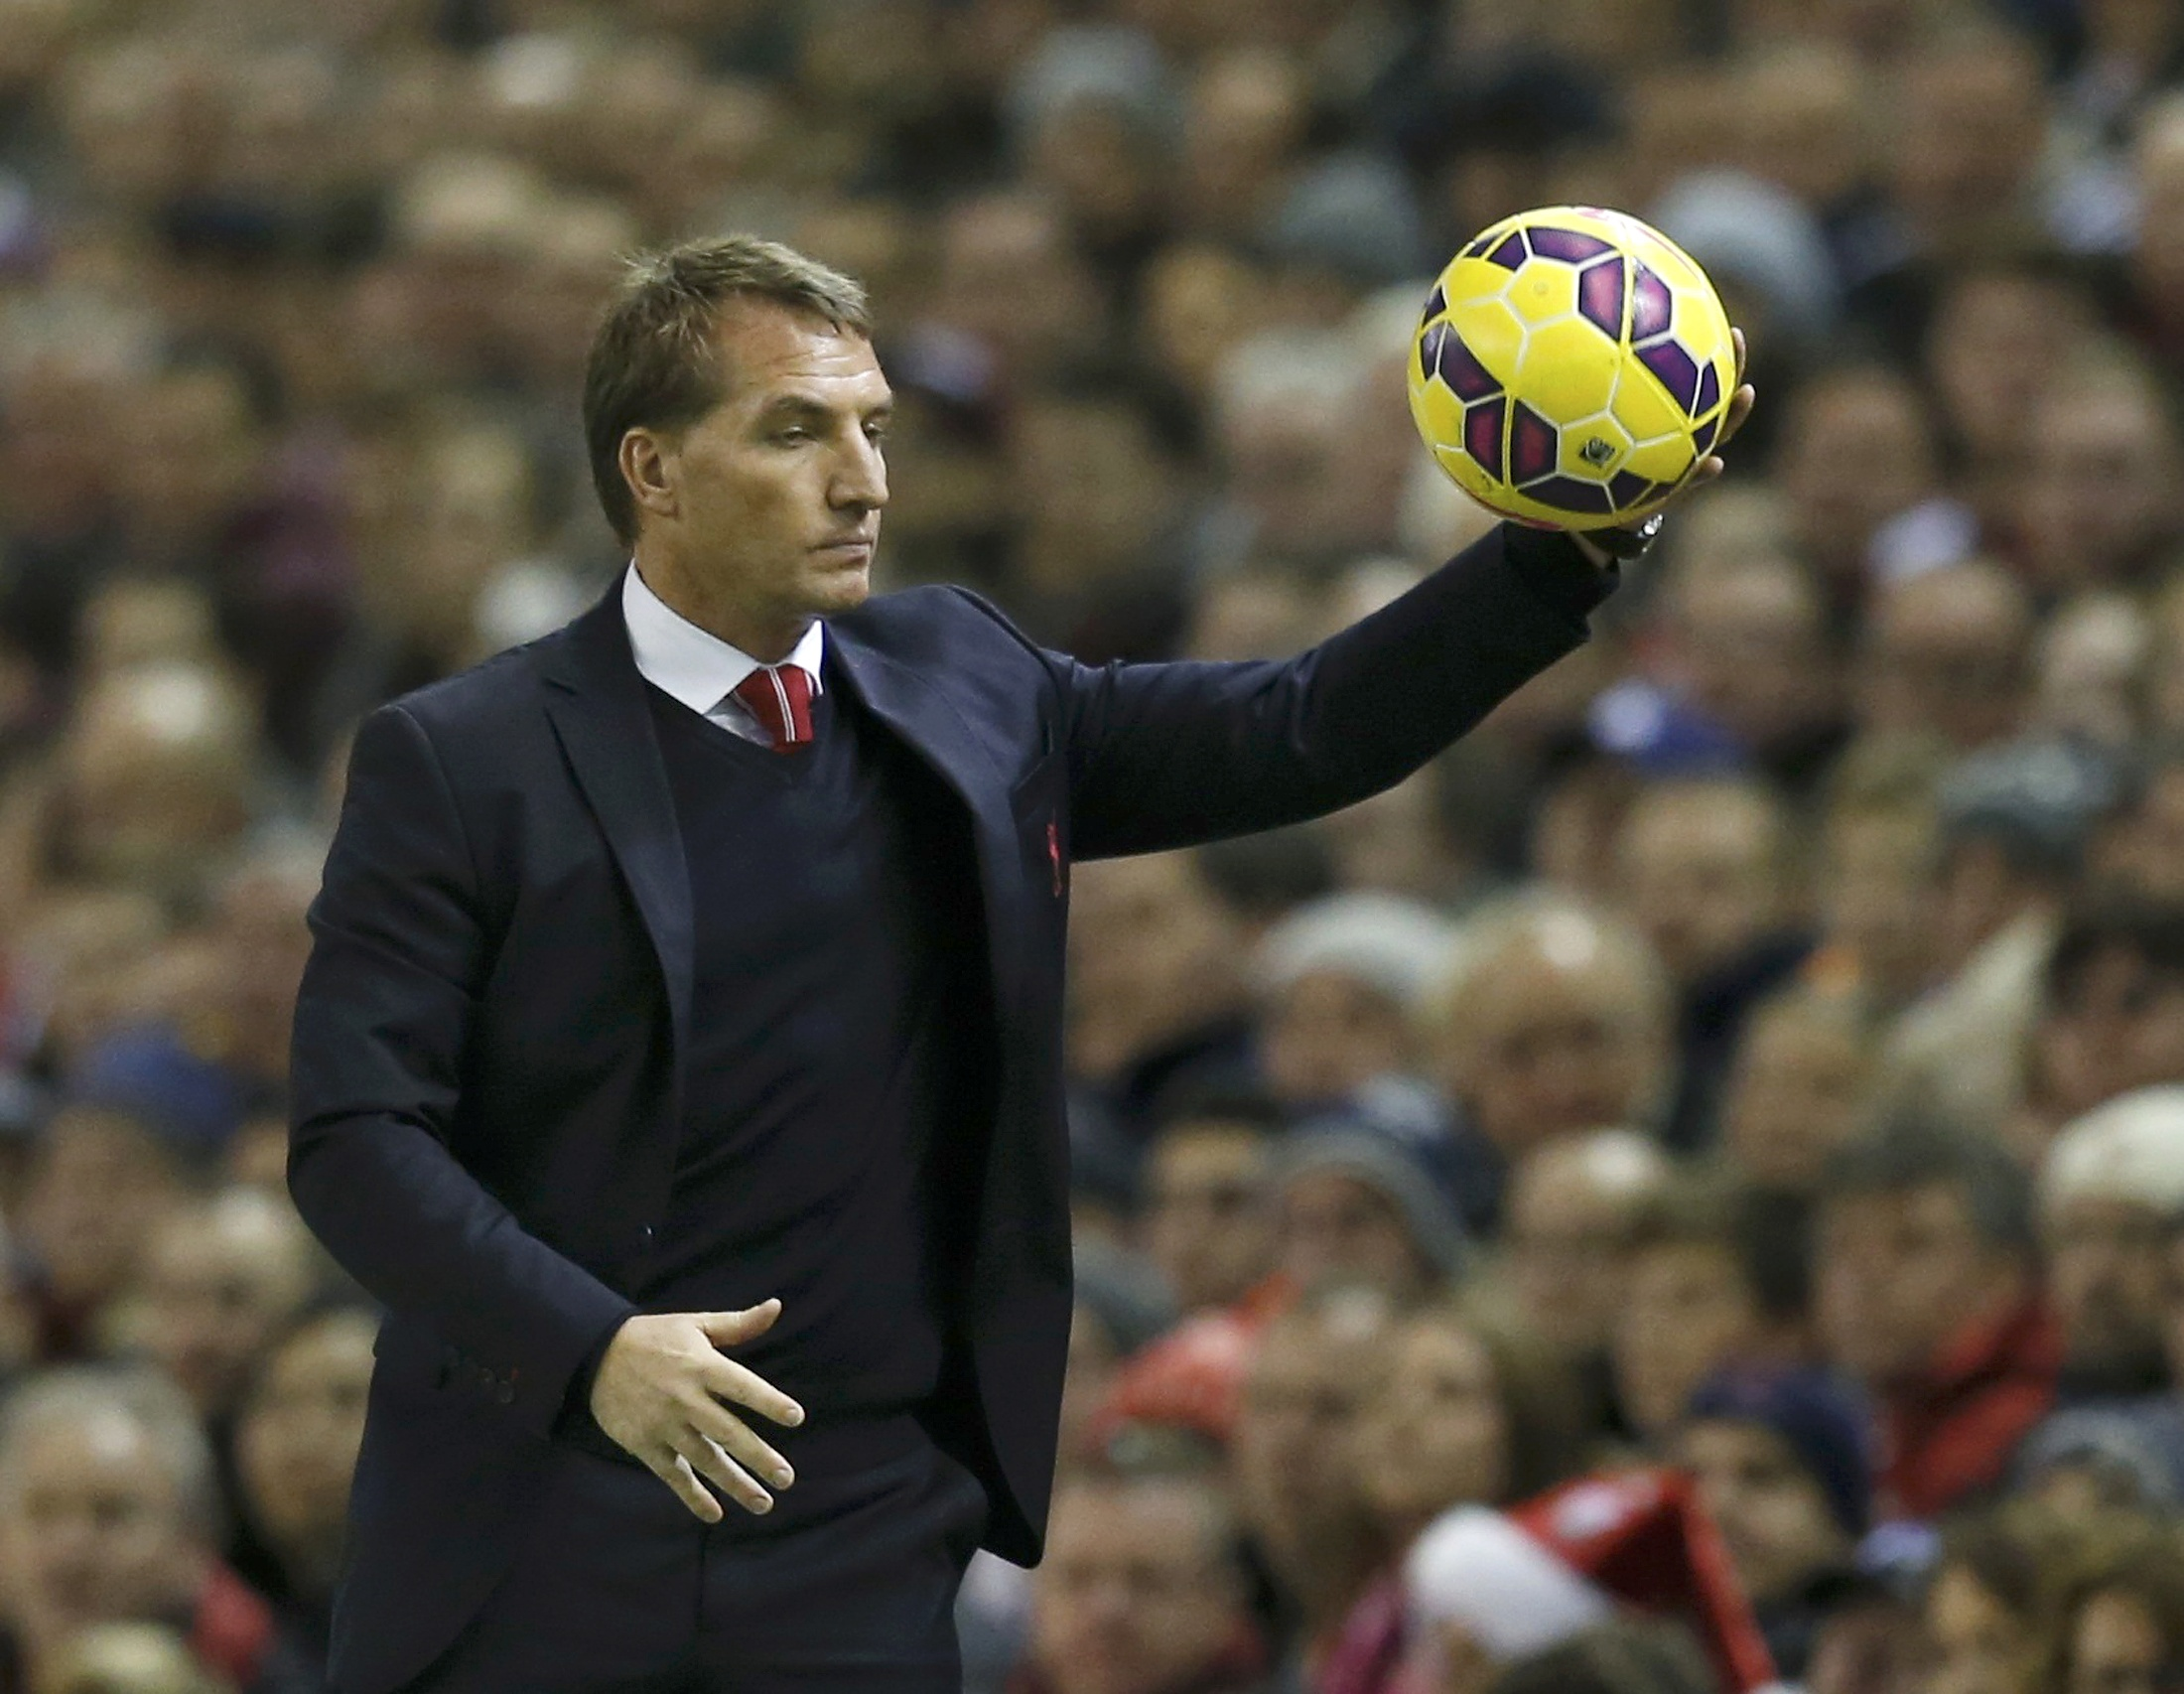 Liverpool manager Brendan Rodgers catches the ball during their English Premier League soccer match against Arsenal at Anfield in Liverpool